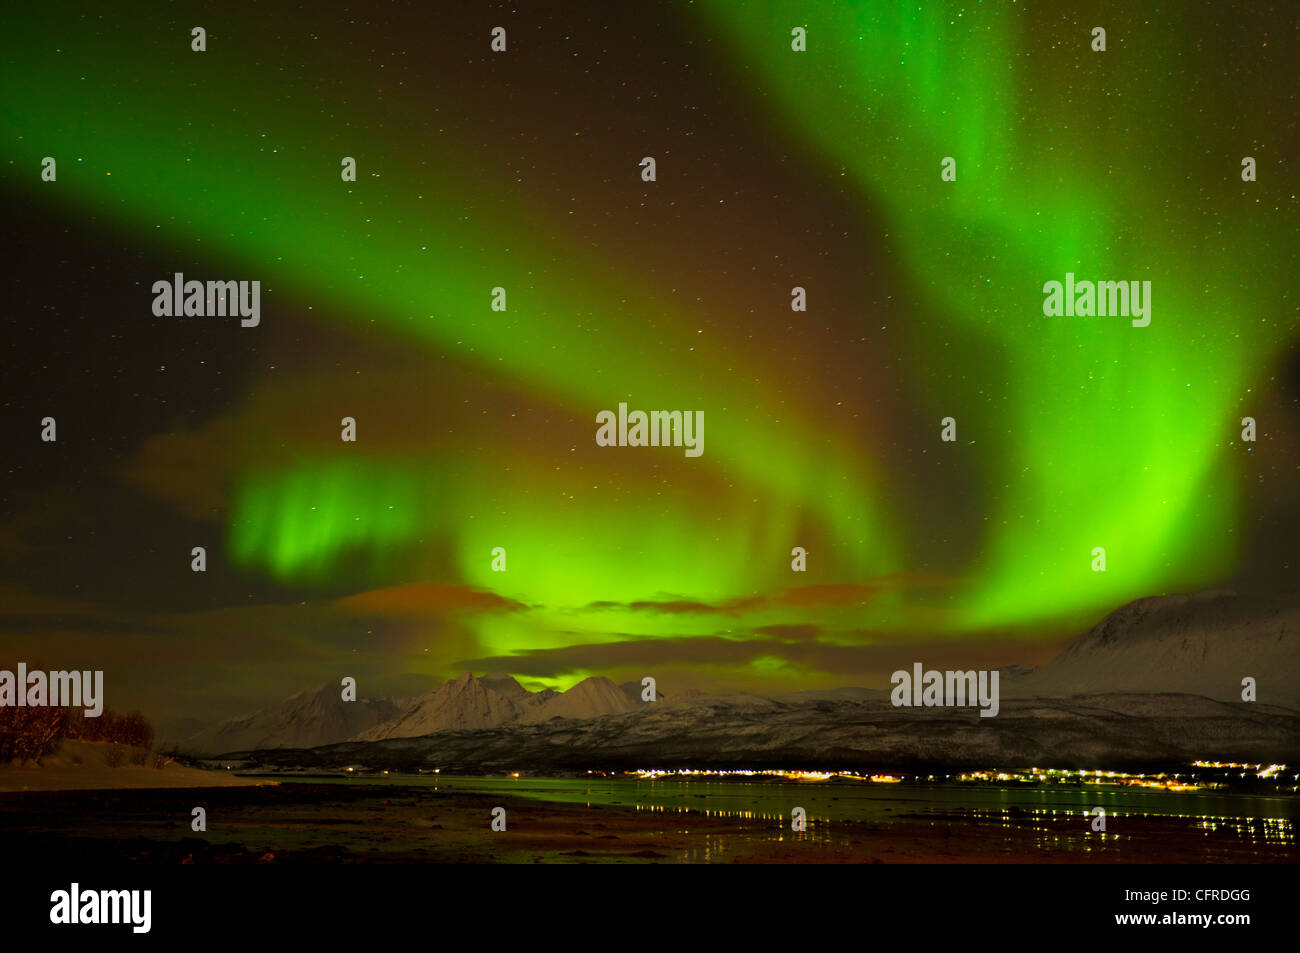 Aurora borealis or northern lights seen over the Lyngen Alps and Ullsfjord, Troms, North Norway, Europe - Stock Image